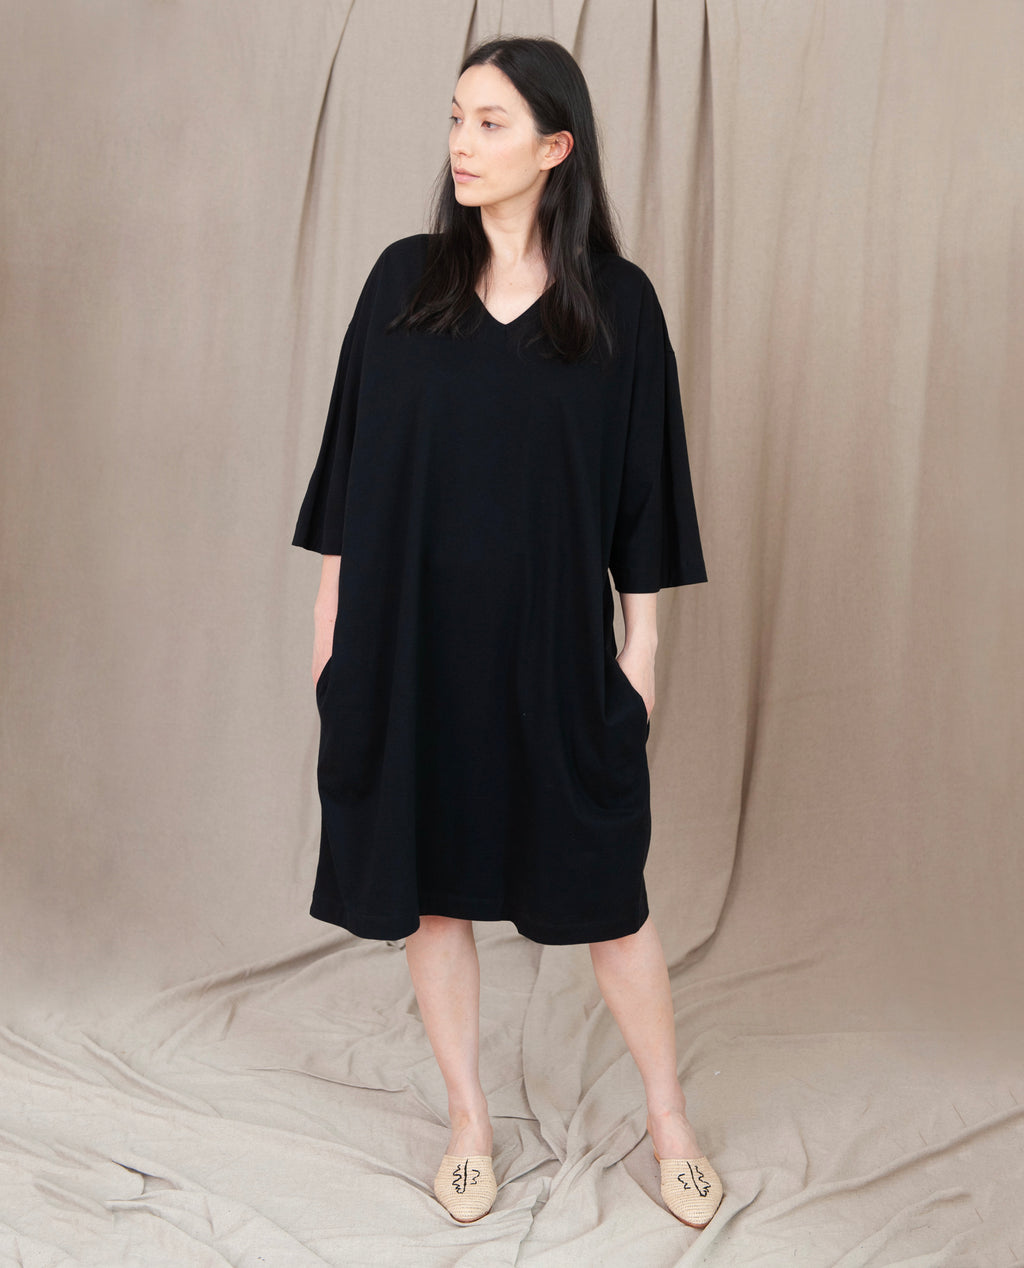 MARGO Organic Cotton Dress In Black